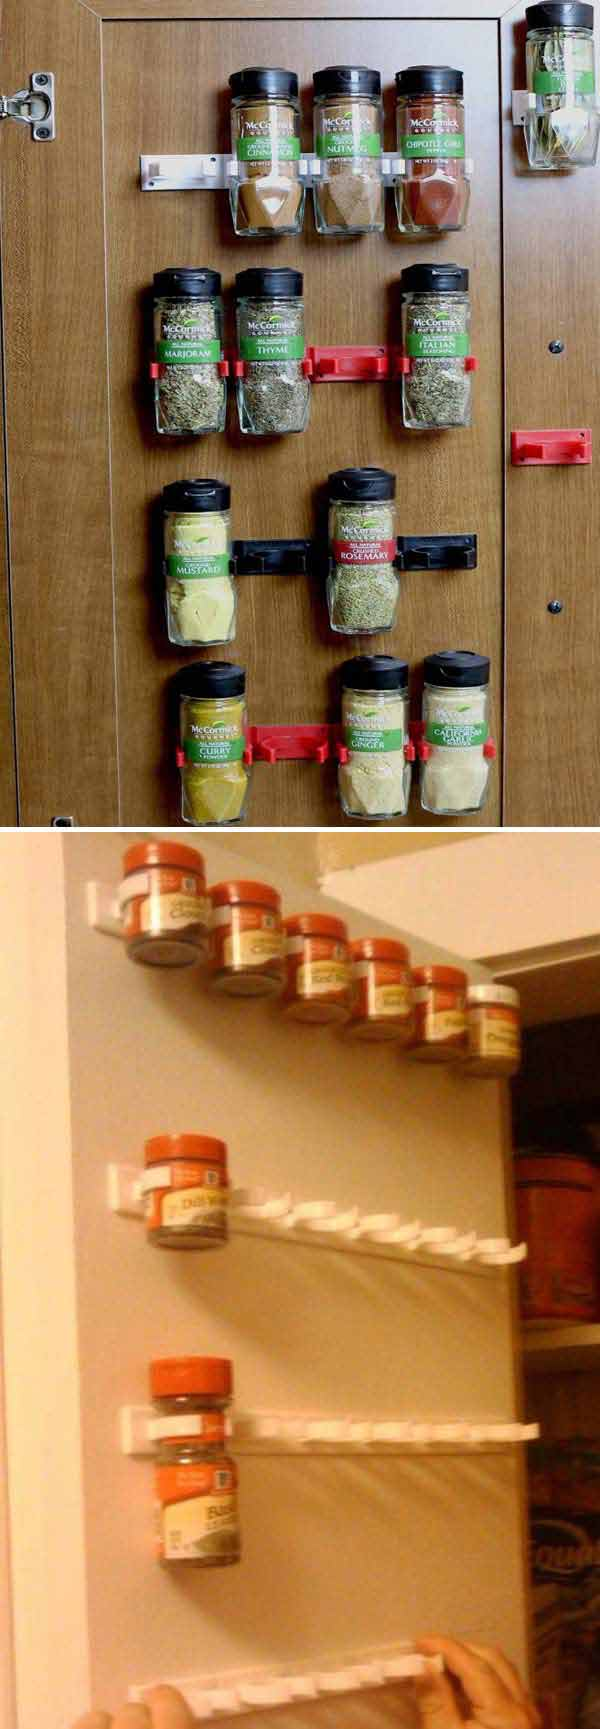 34 Super Epic Small Kitchen Hacks For Your Household homesthetics decor (12)